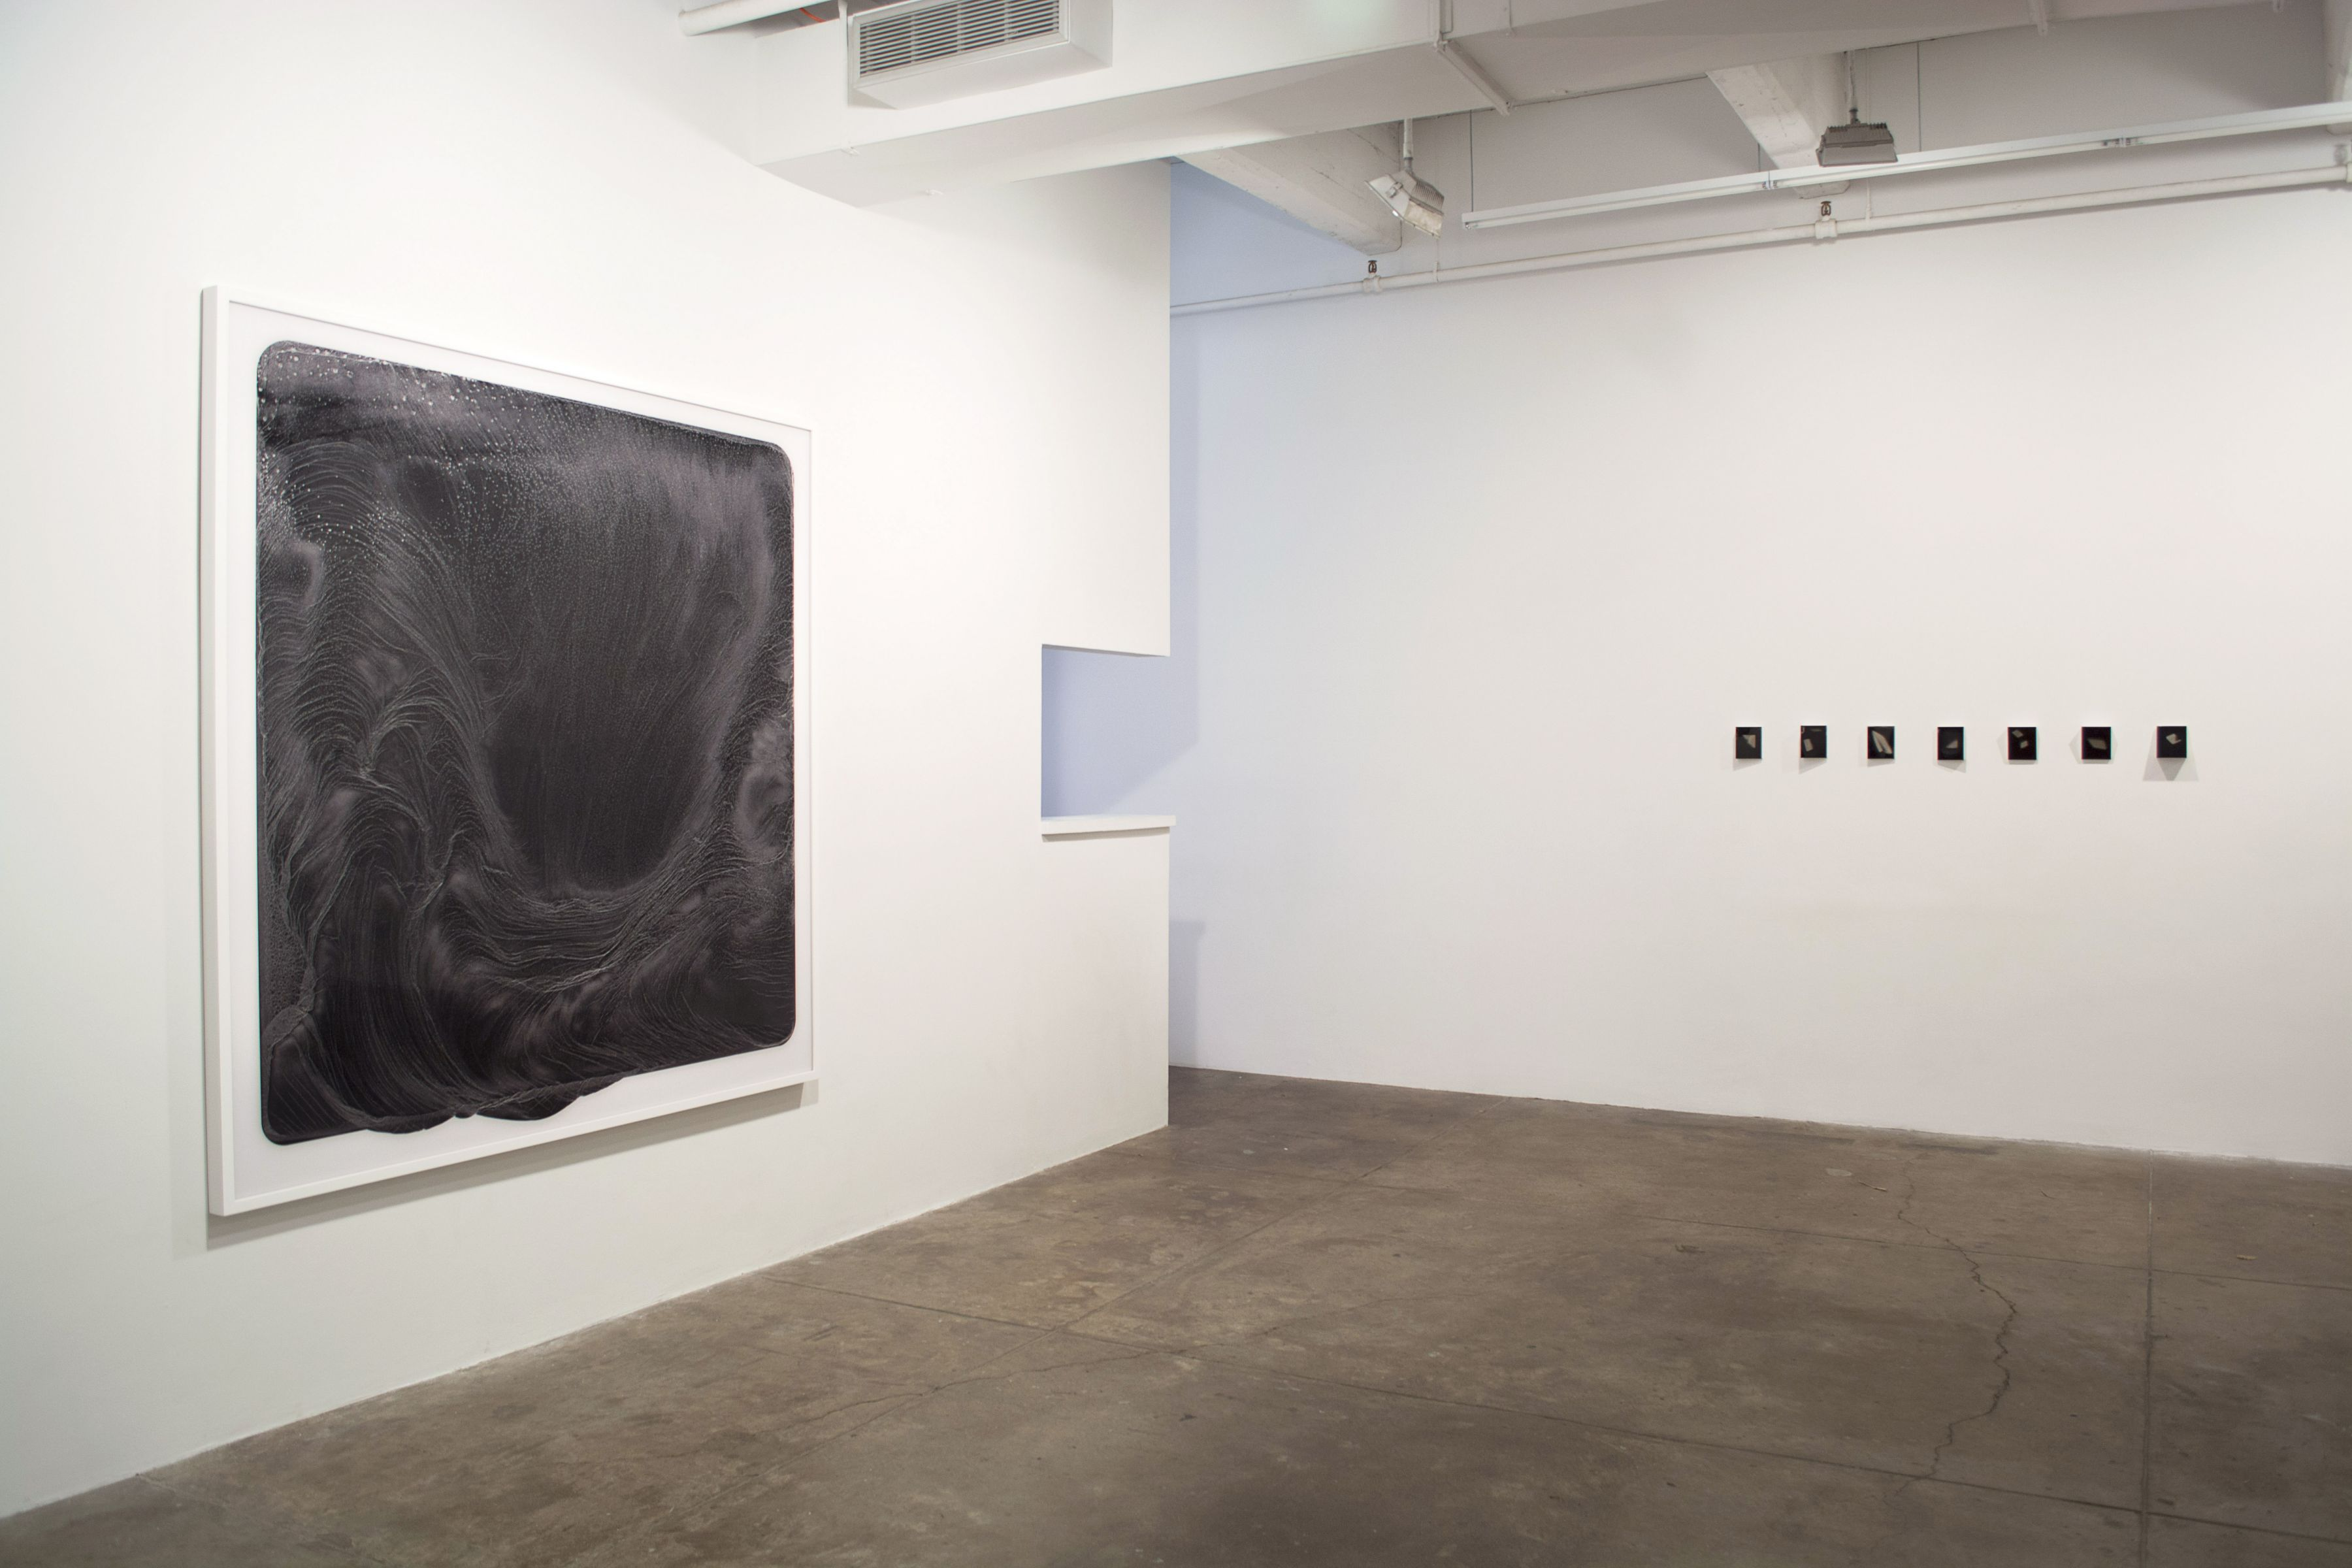 Brittany Nelson, Installation View, 2016